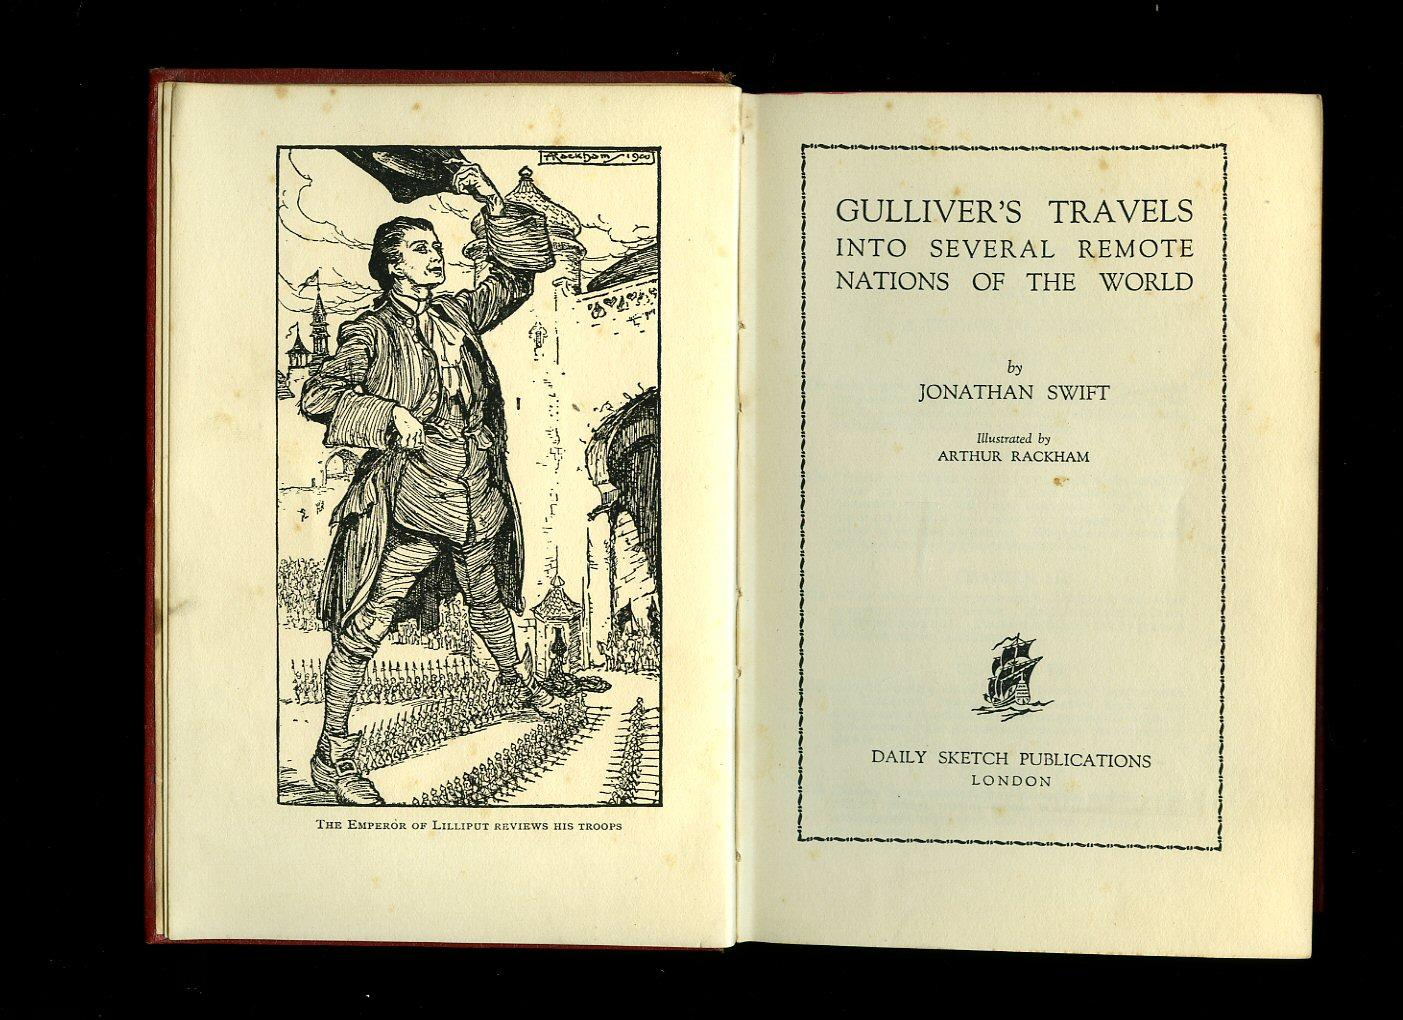 Gullivers Travels Into Several Remote Nations of the World - Illustrated by Arthur Rackham